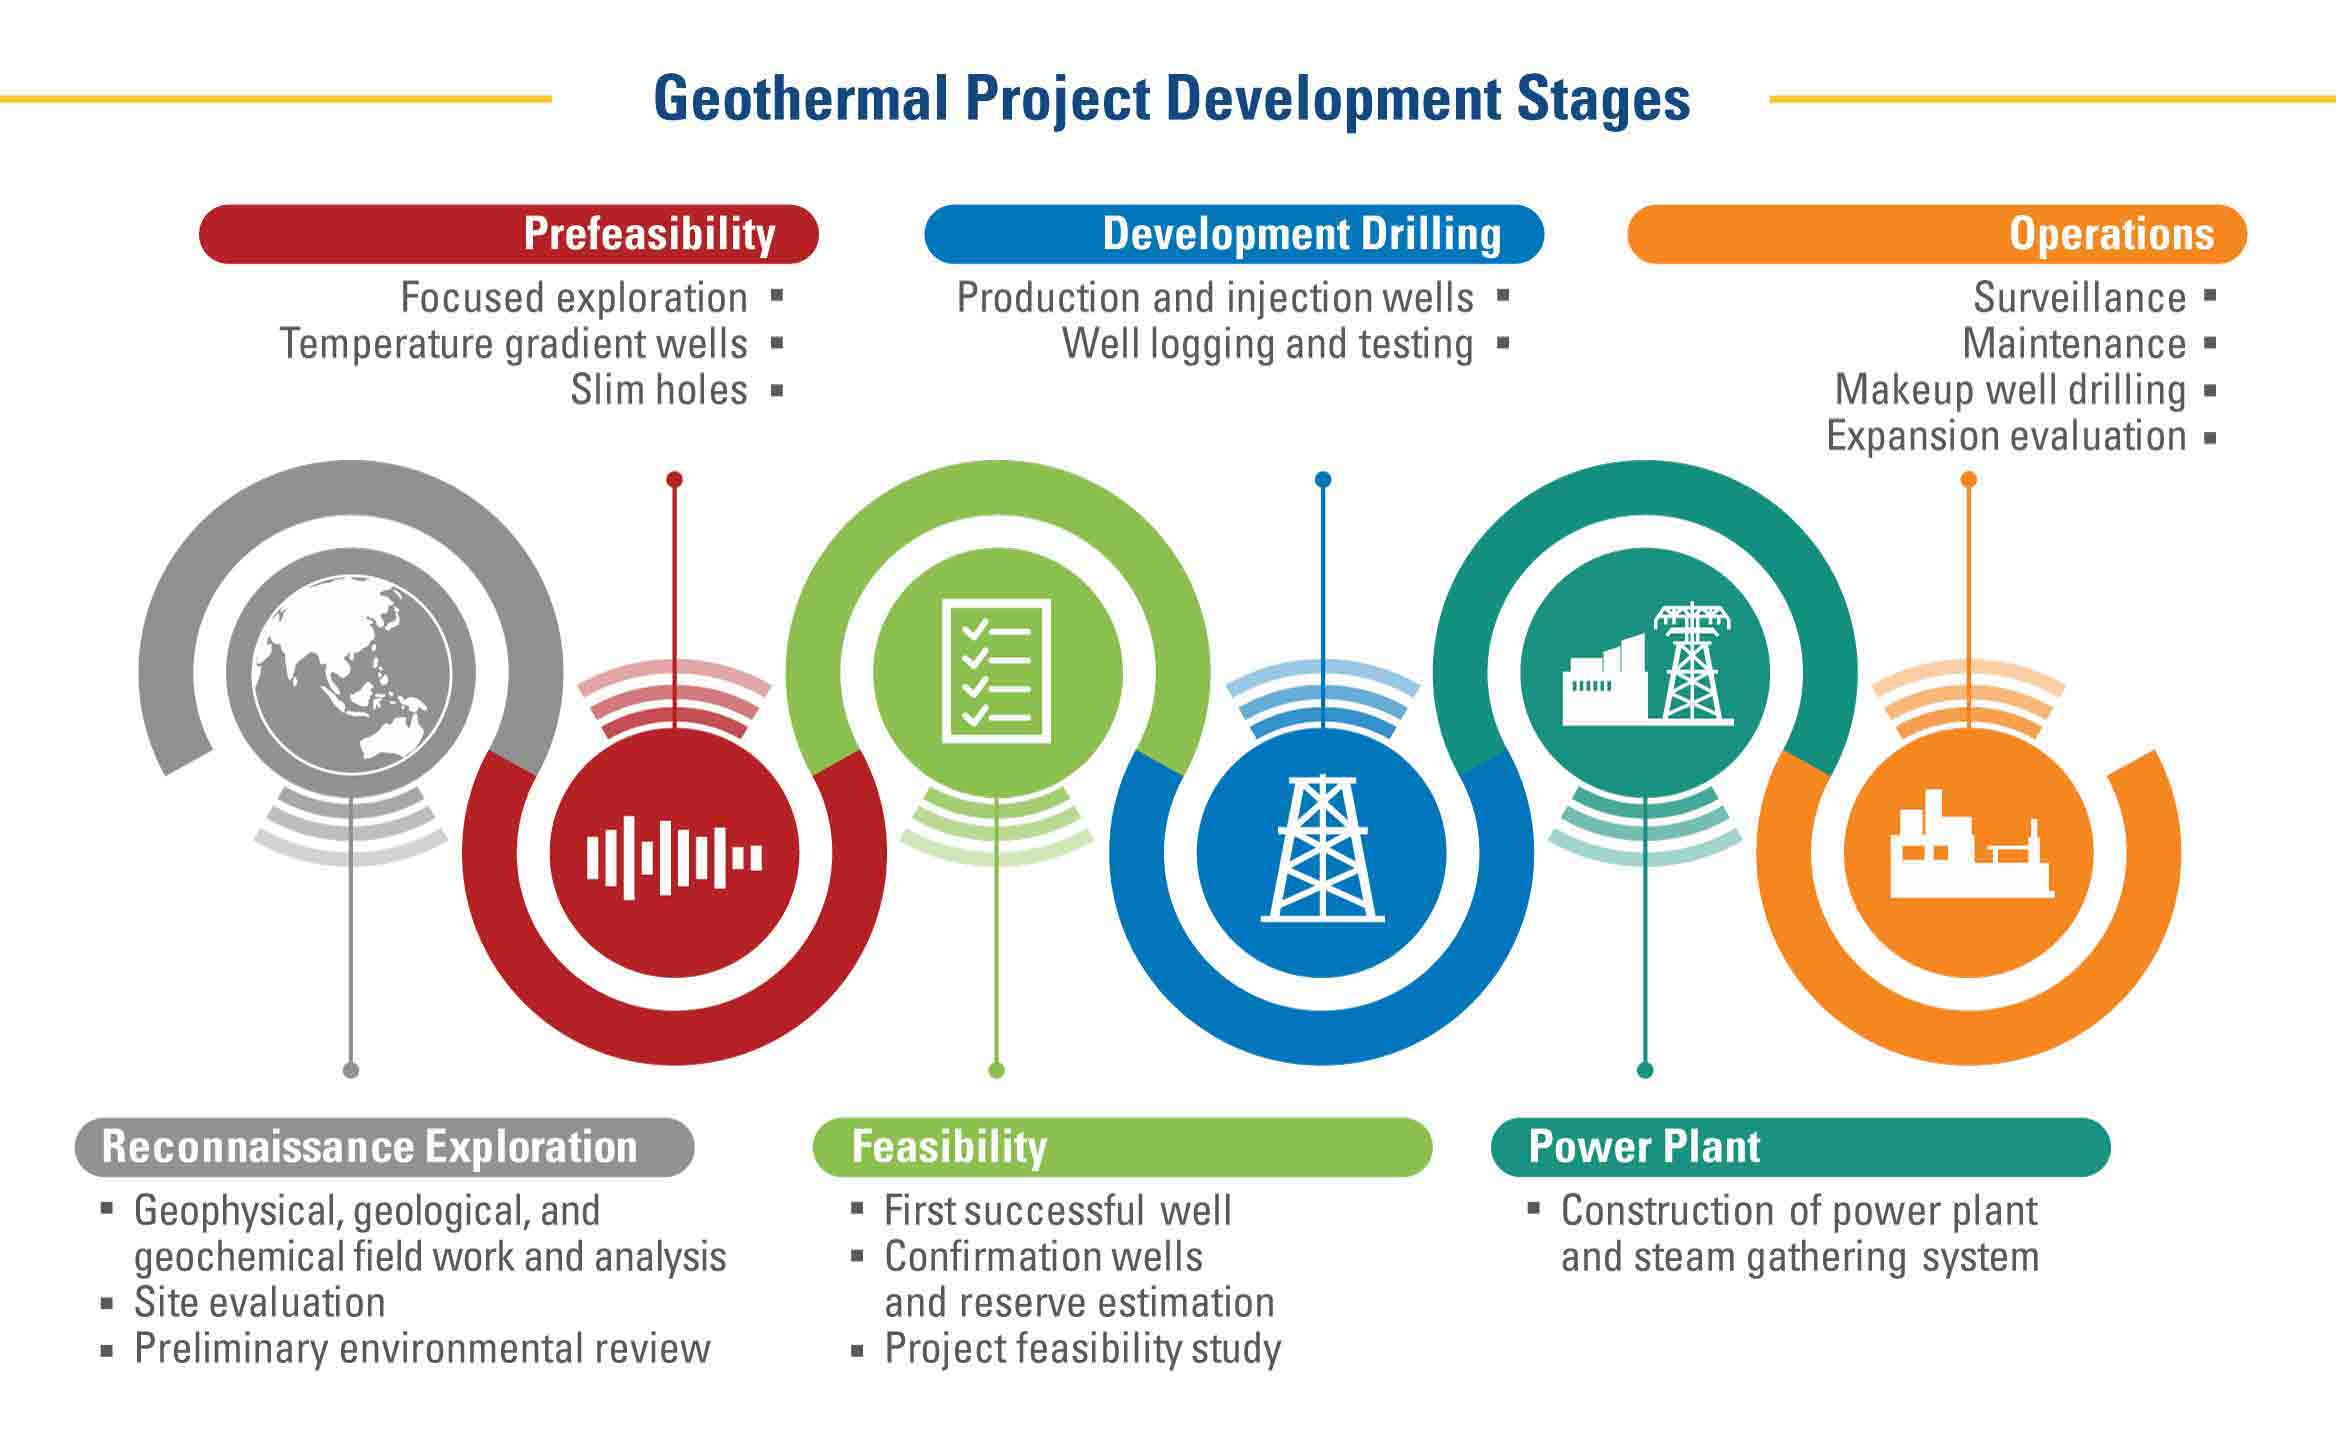 Geothermal project stages: reconnaissance; prefeasibility; feasibility; development drilling; power plant, operations